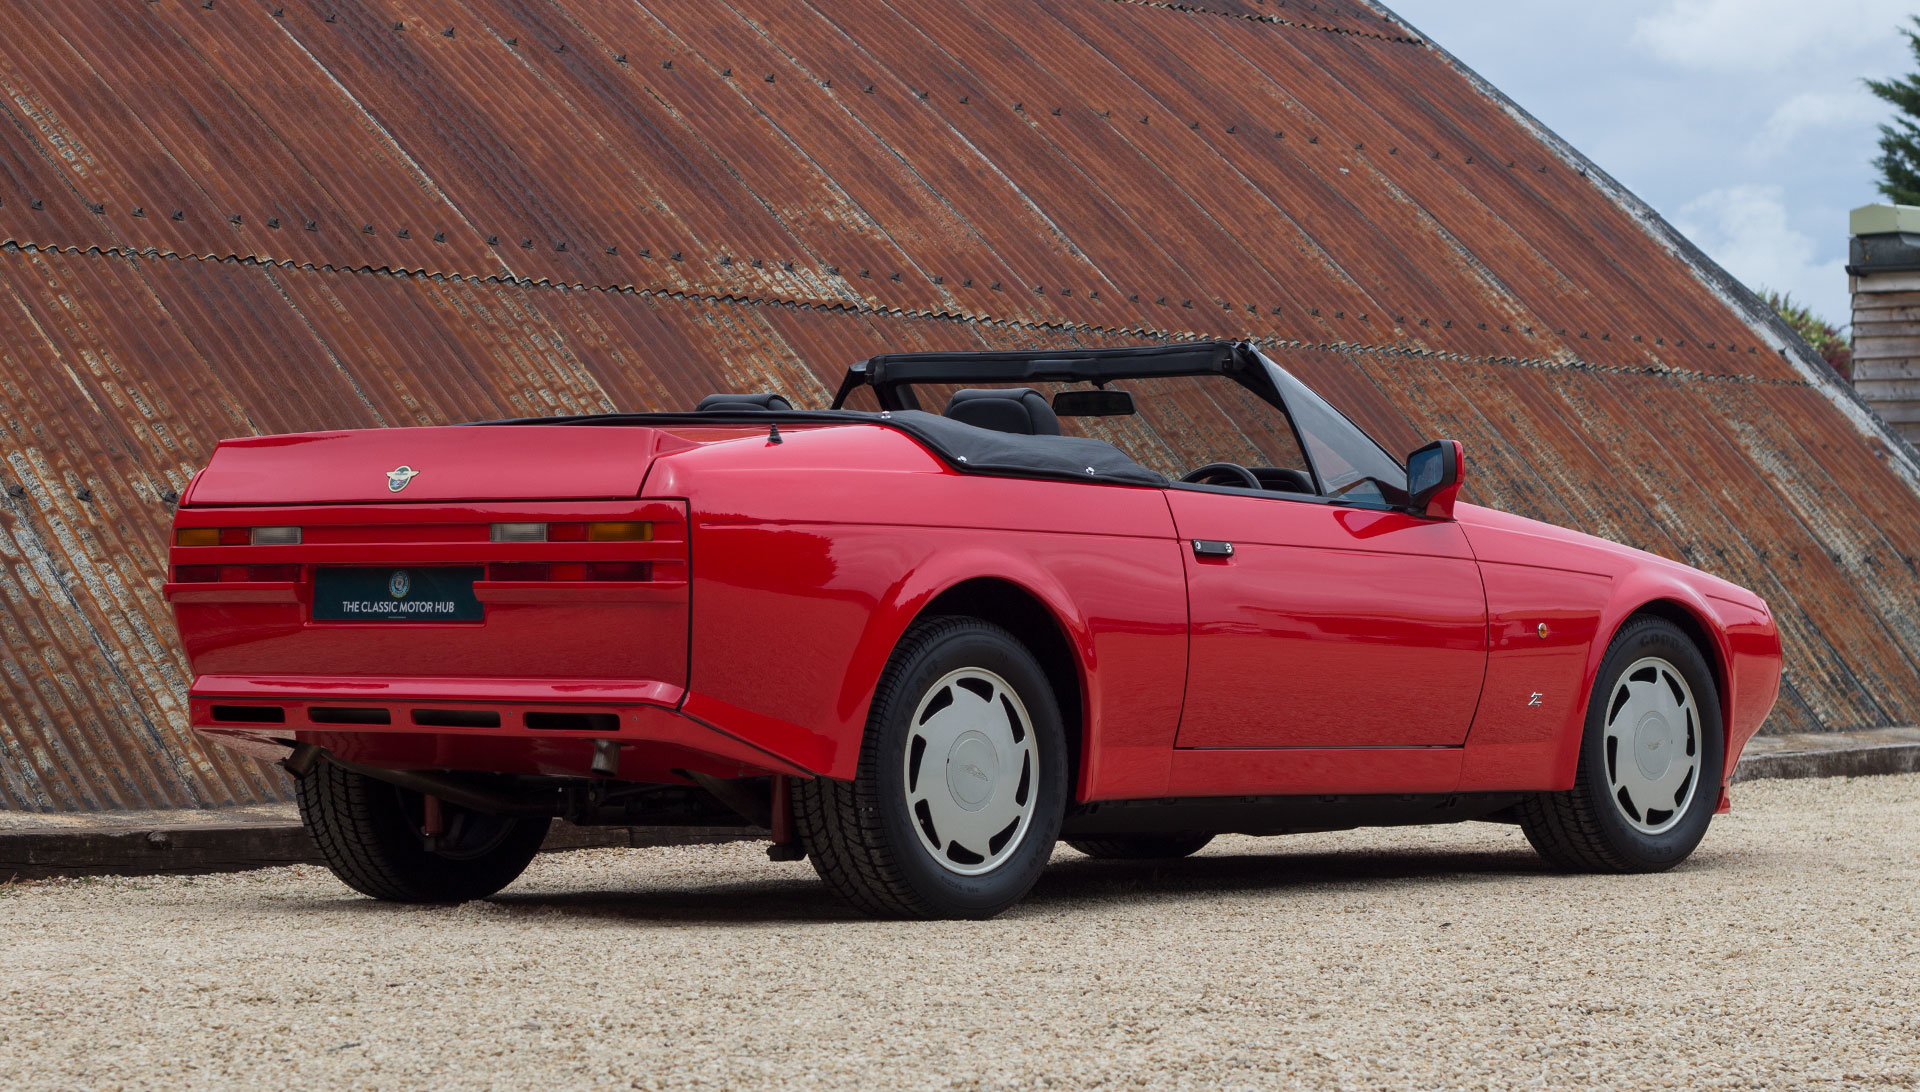 1989 Aston Martin V8 Vantage Volante Zagato - Unregistered For Sale (picture 8 of 24)